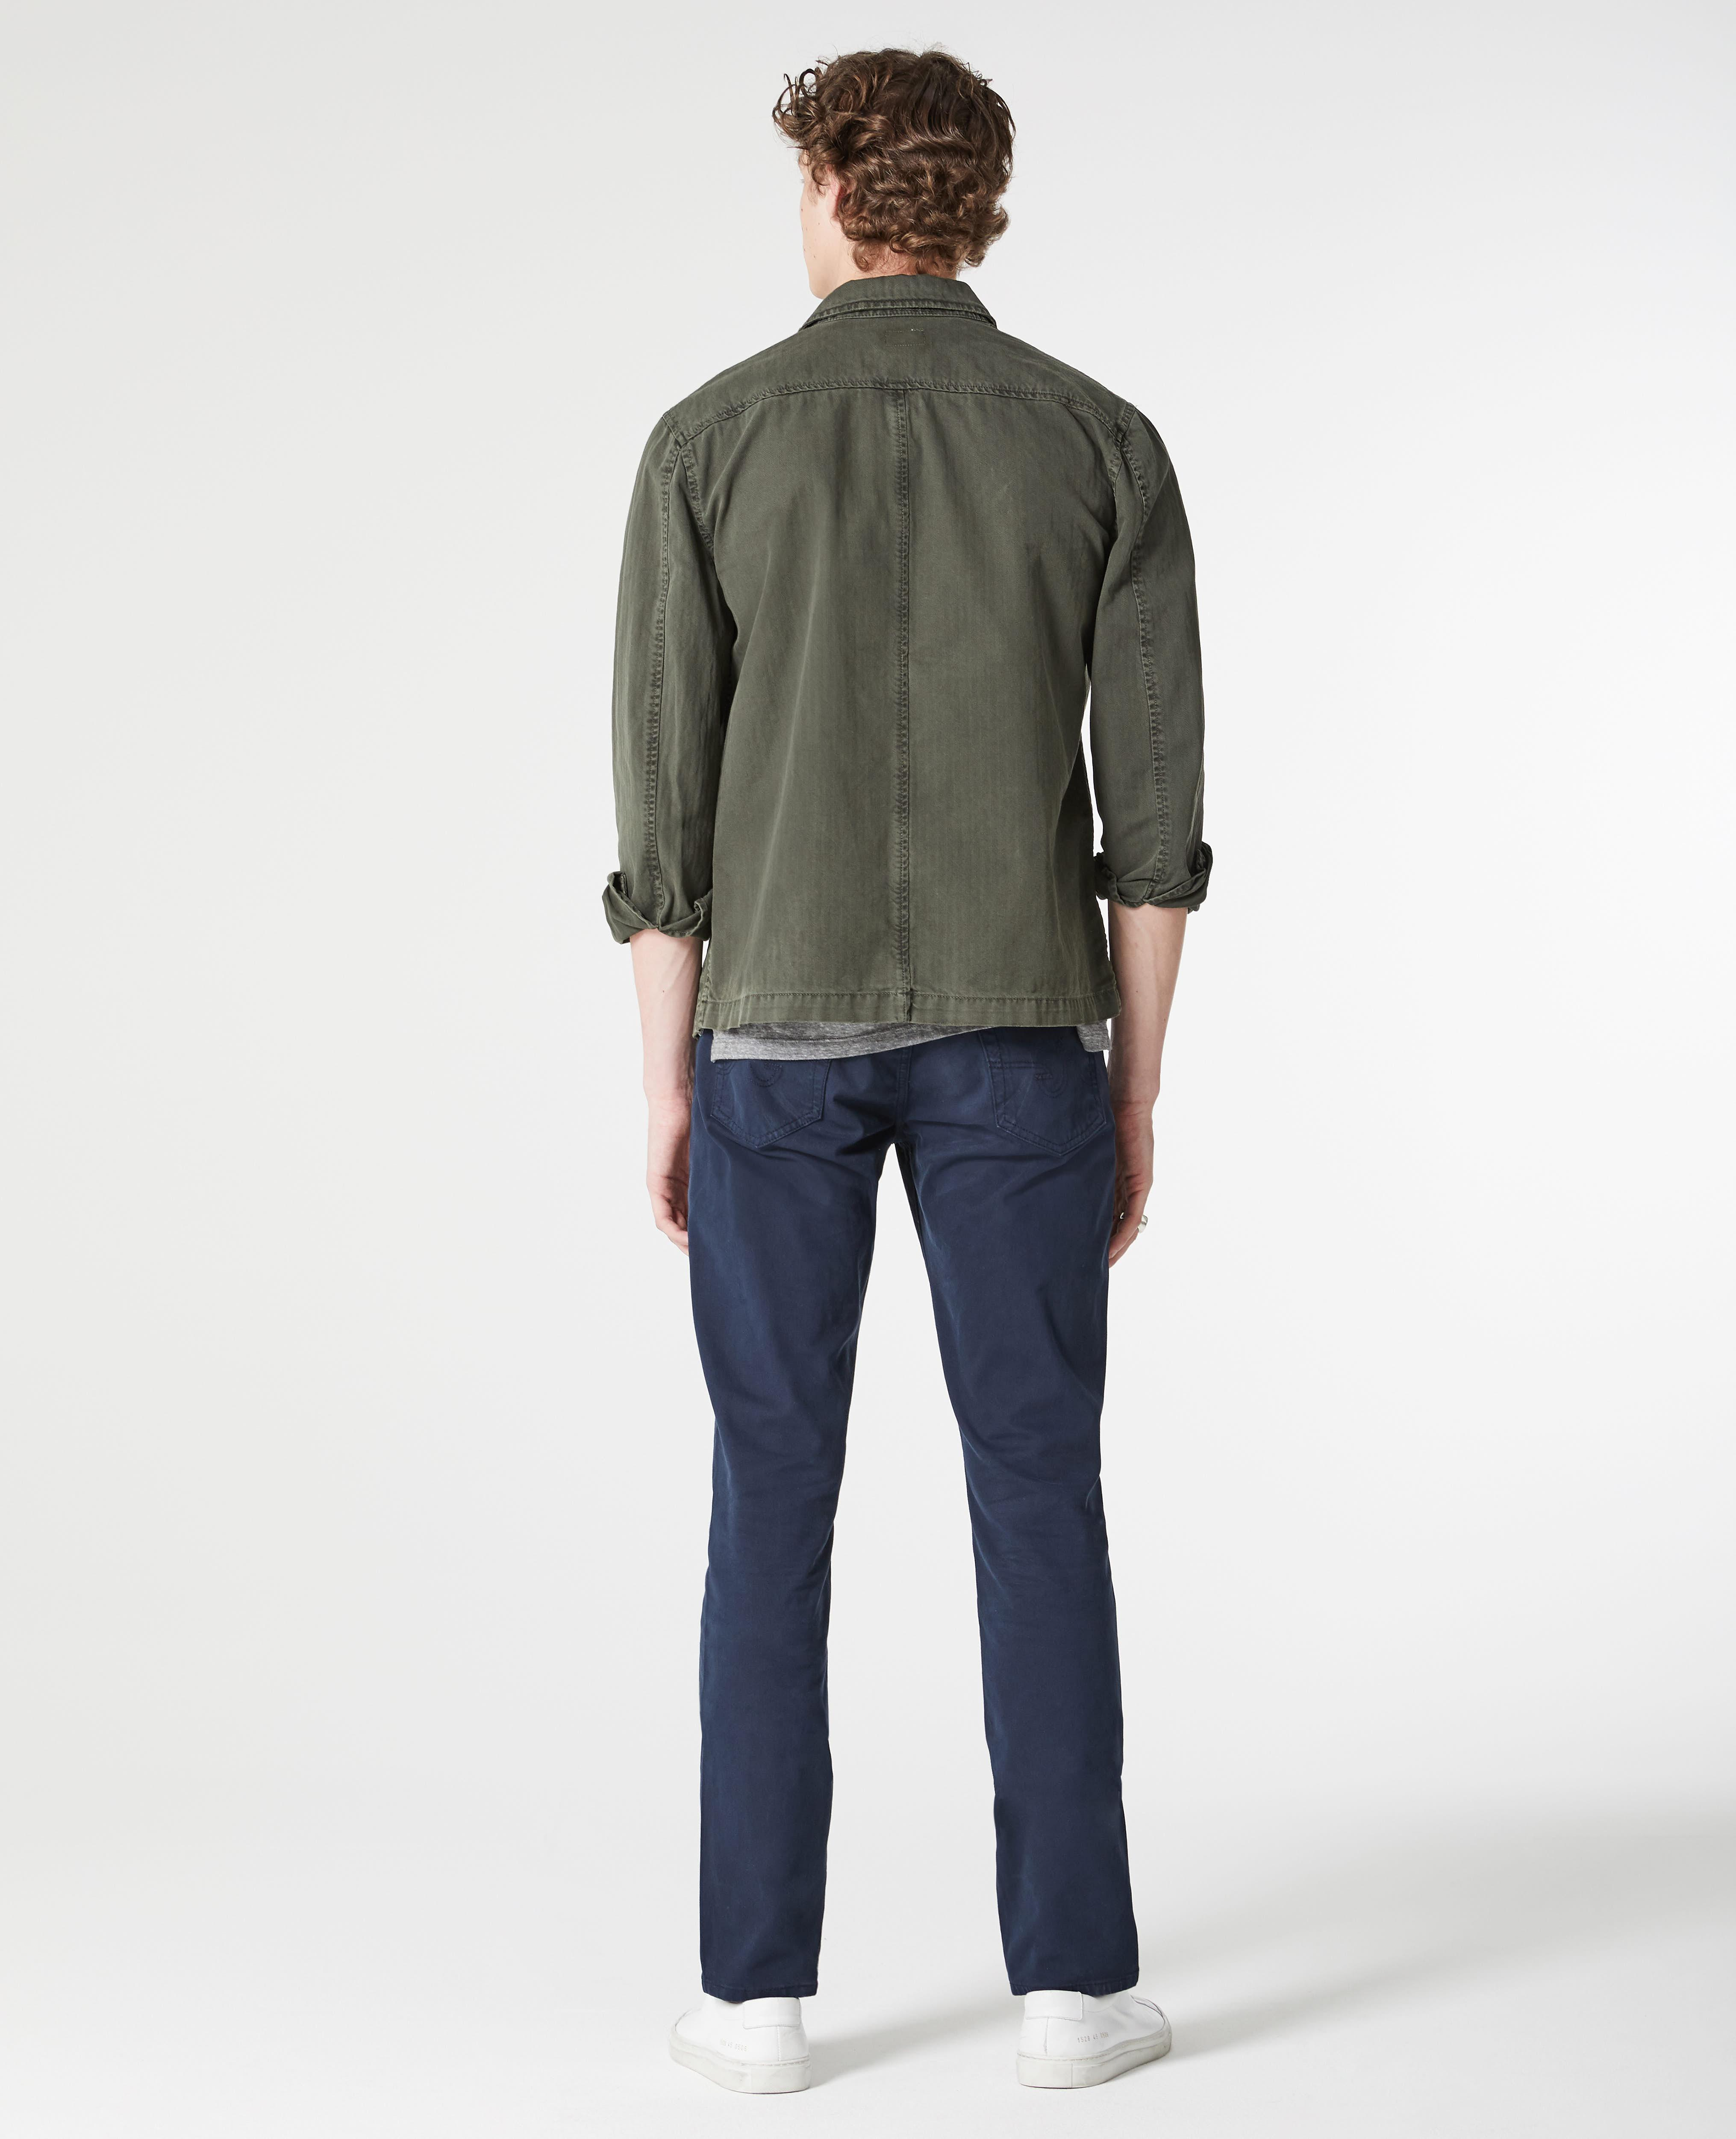 The Sueded Sateen Everett